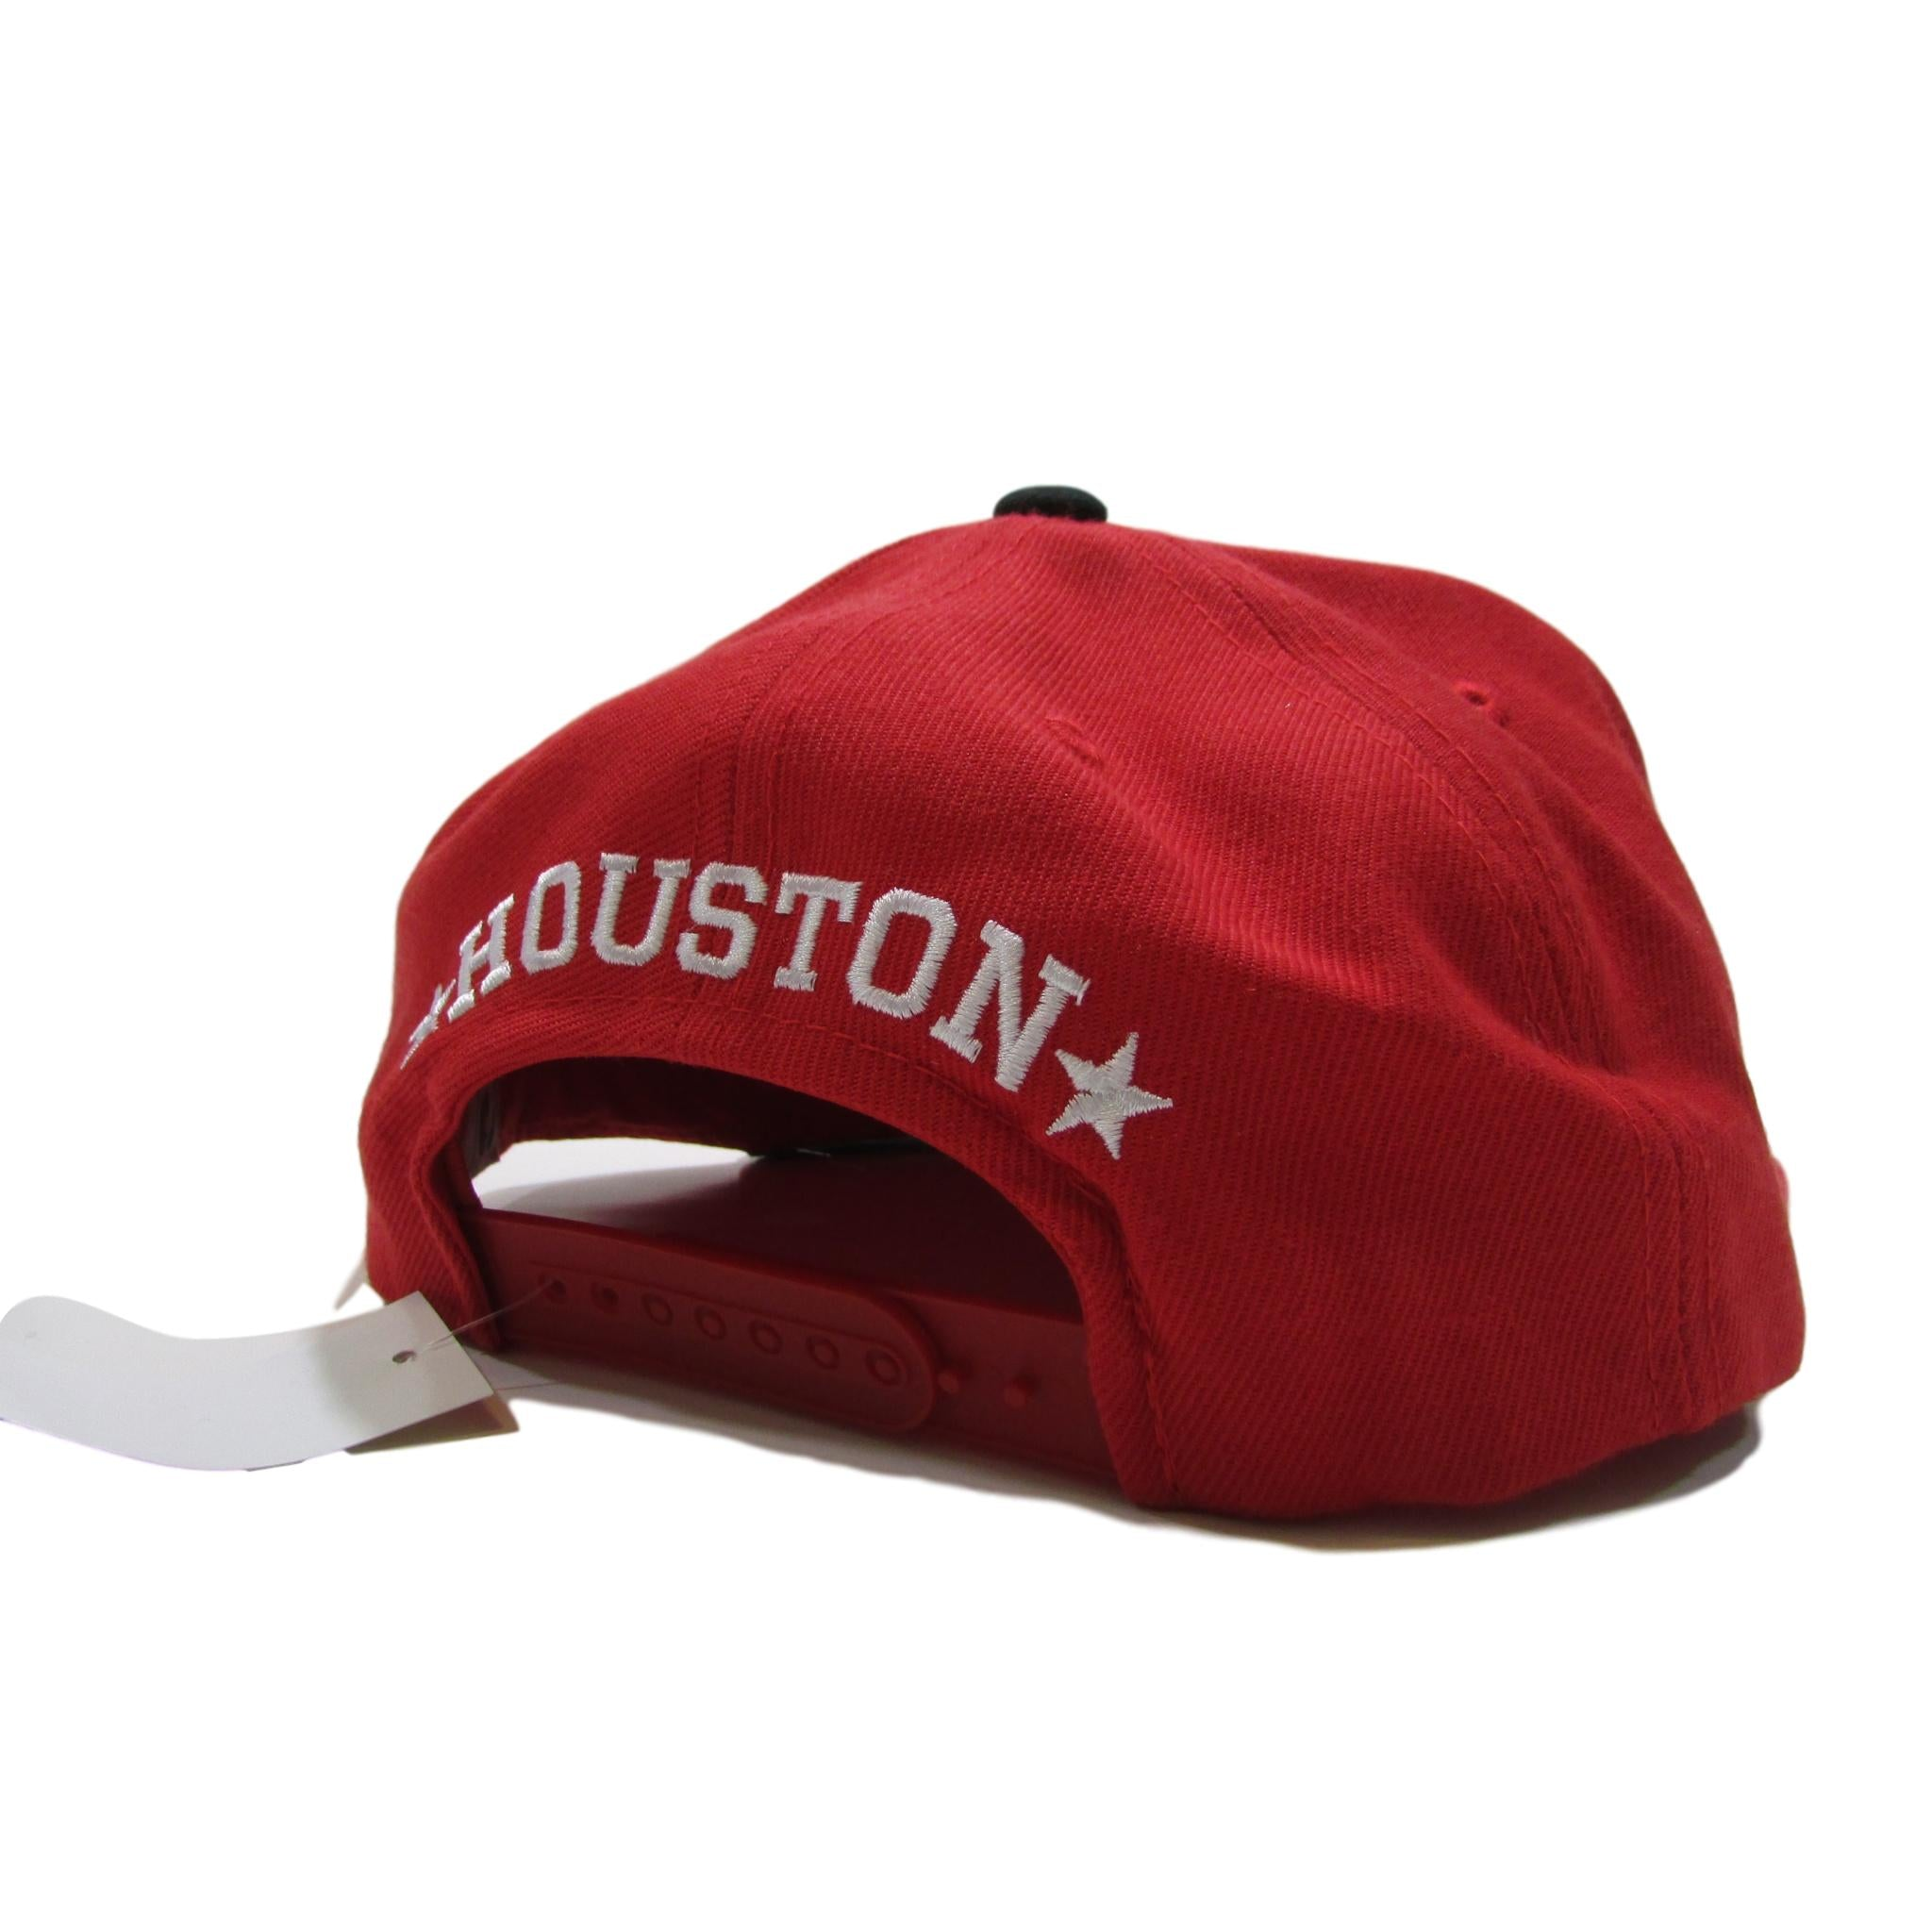 Houston Rockets NBA Snapback Classic Red w/ Arch Font